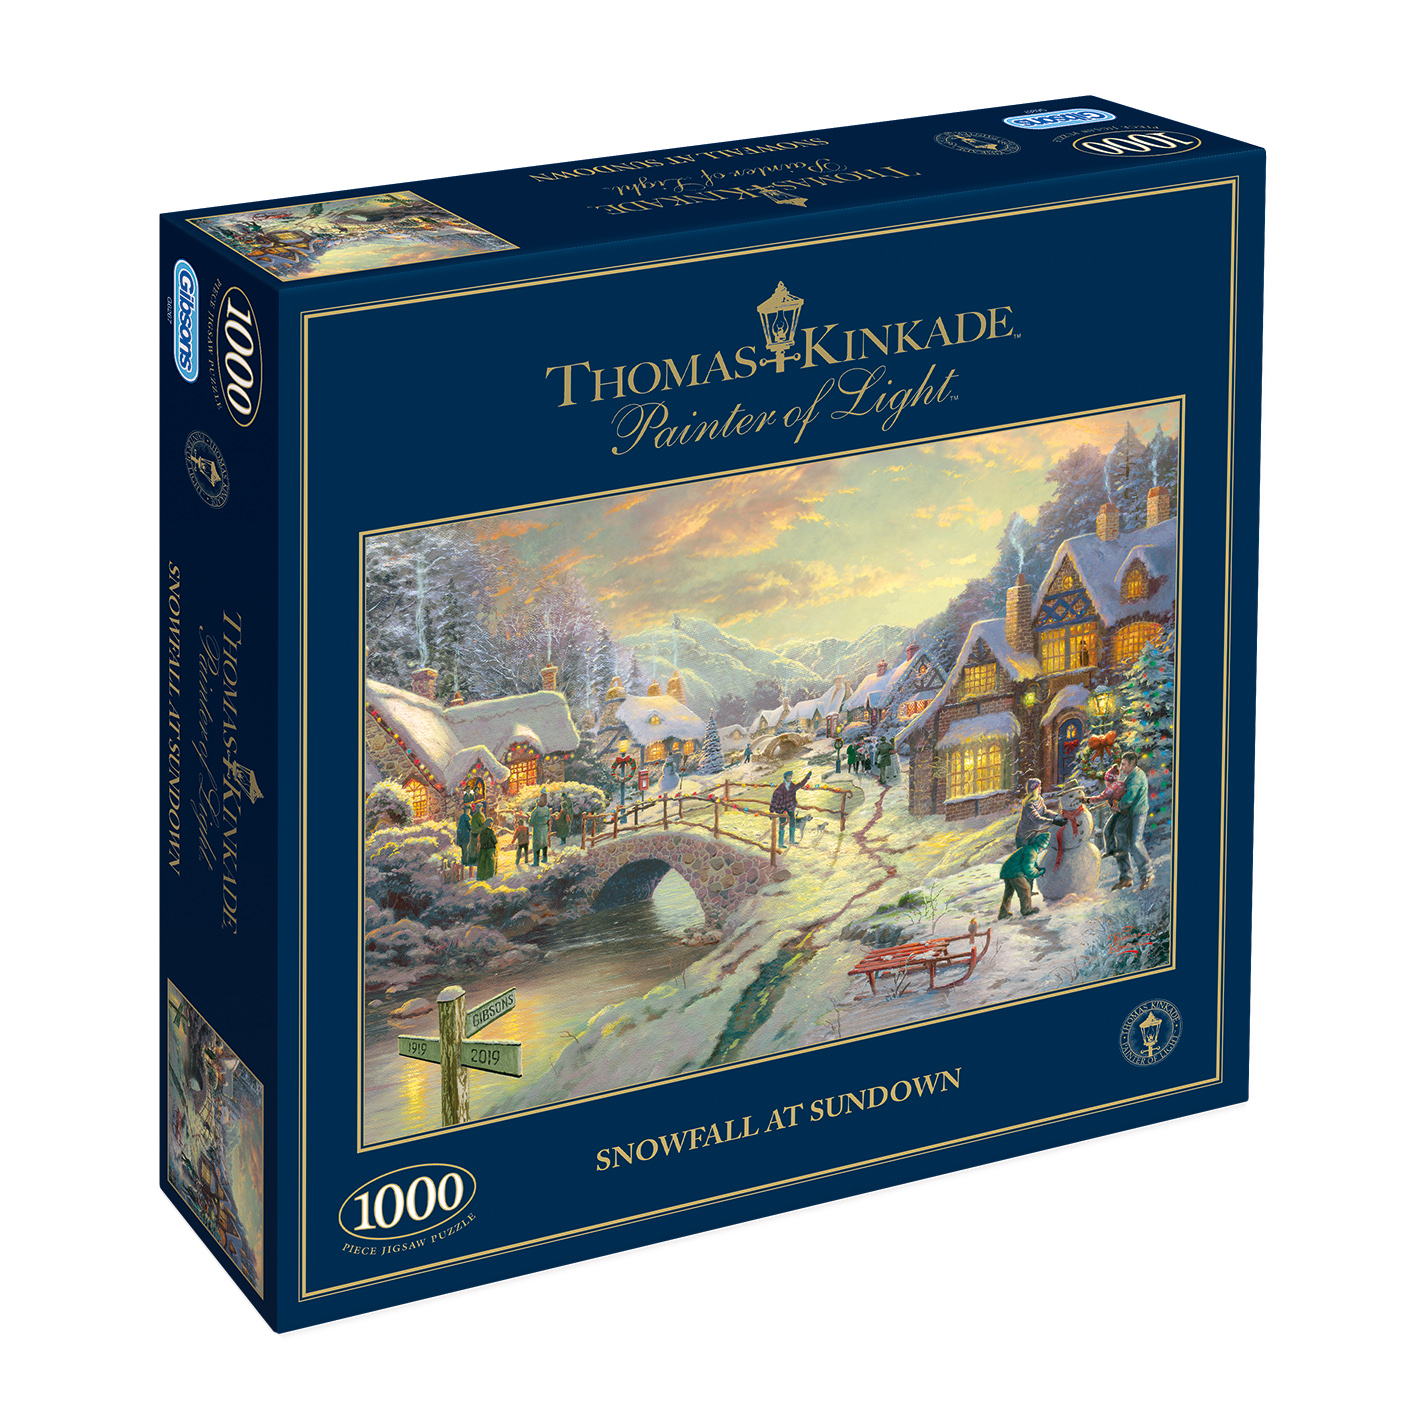 Snowfall at Sundown 1000pc Jigsaw Puzzle